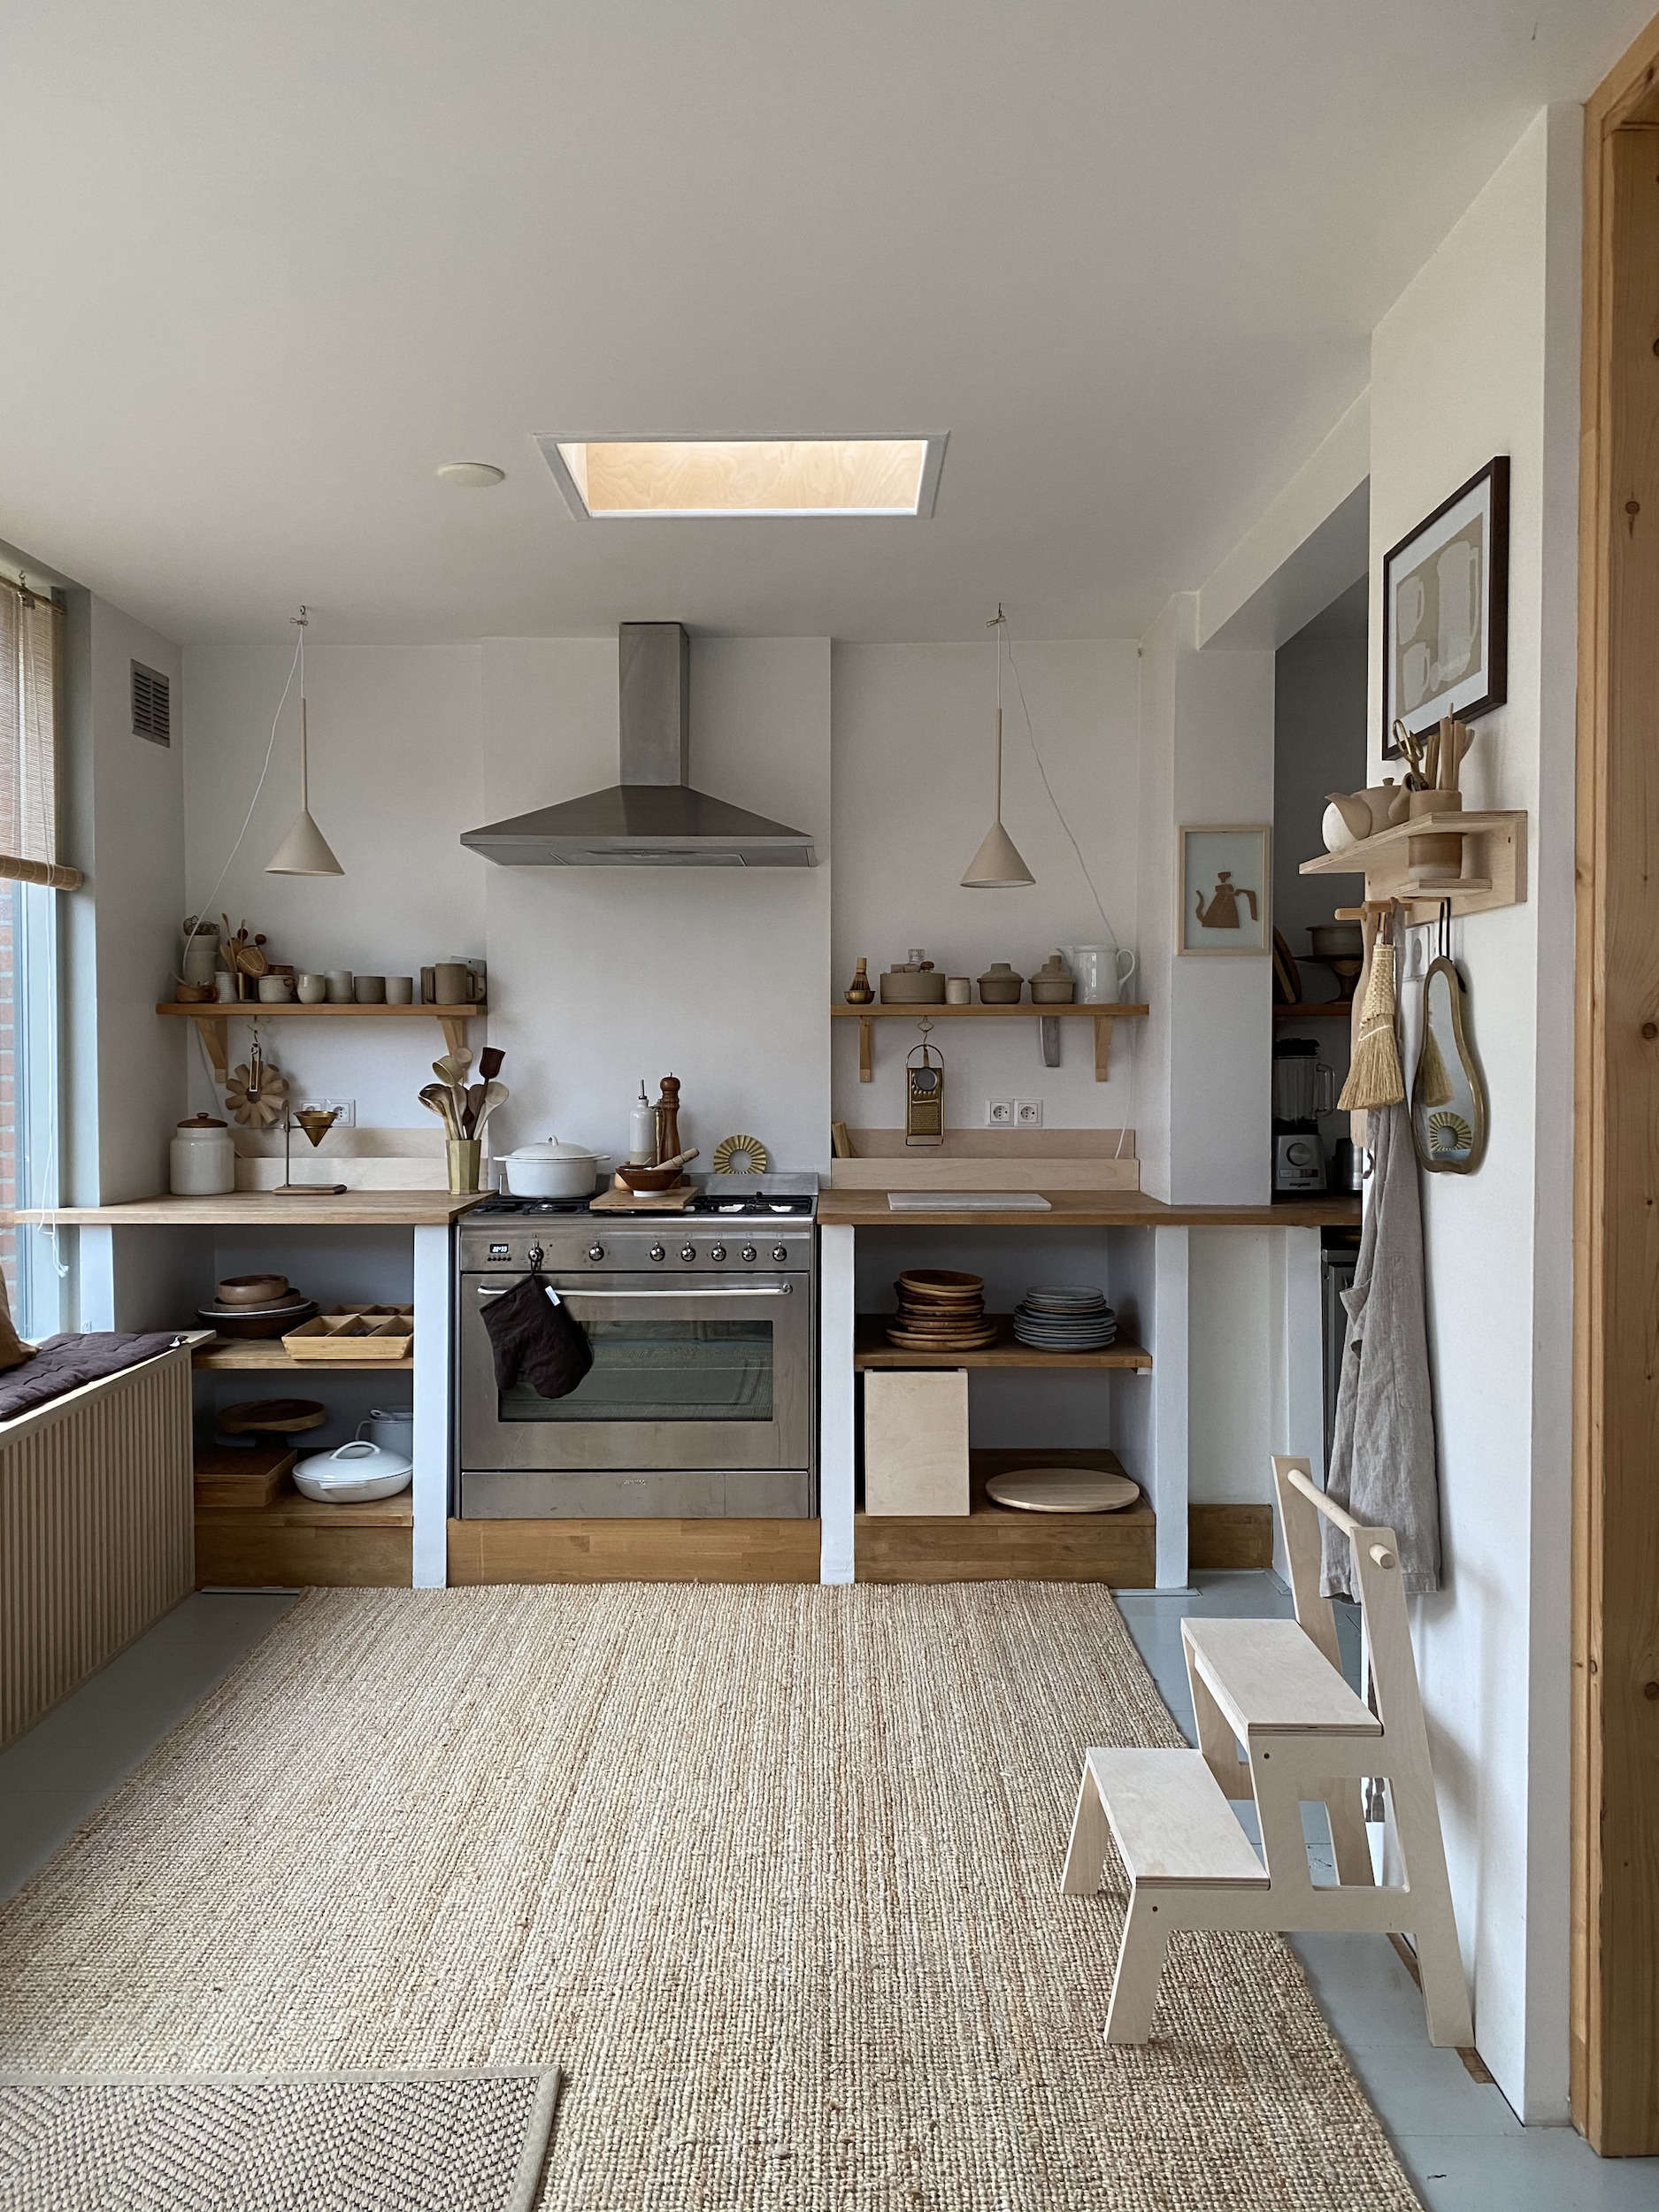 Carved in Wood: The Bespoke Home of a Self-Taught Carpenter and an Interior Designer